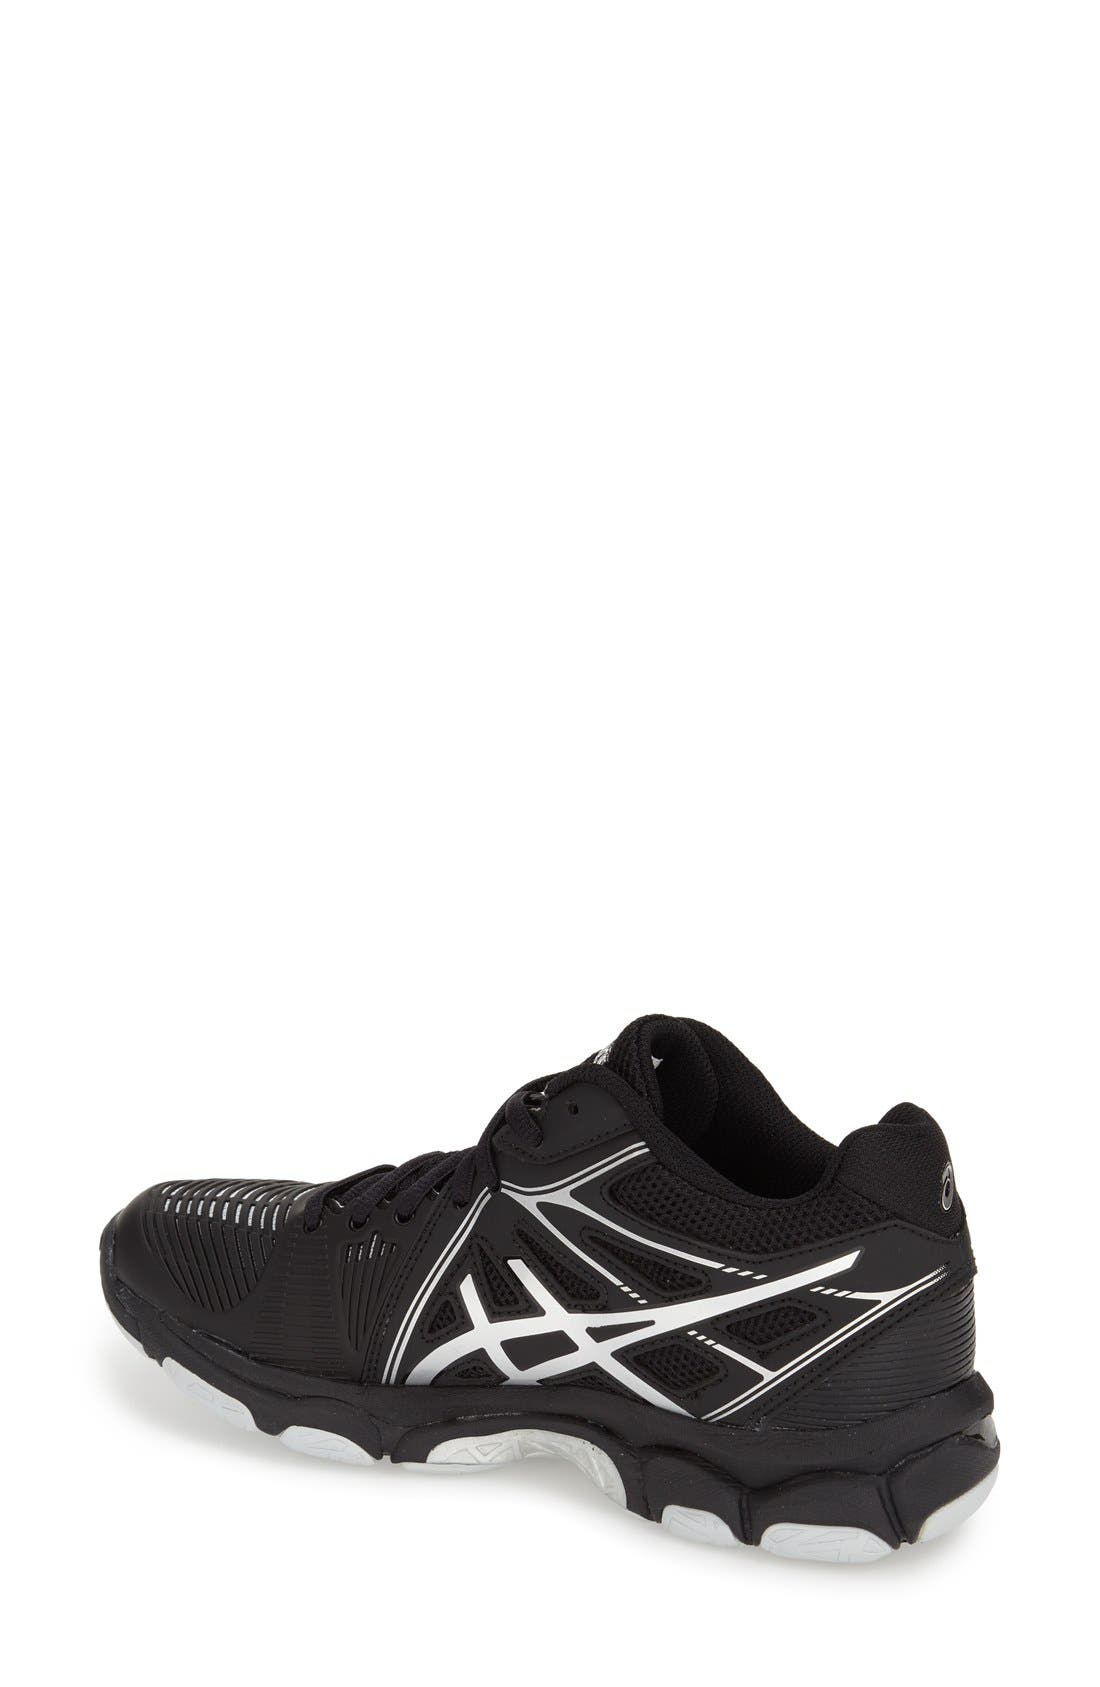 Alternate Image 2  - ASICS® 'GEL-Netburner' Mid Volleyball Shoe (Women)